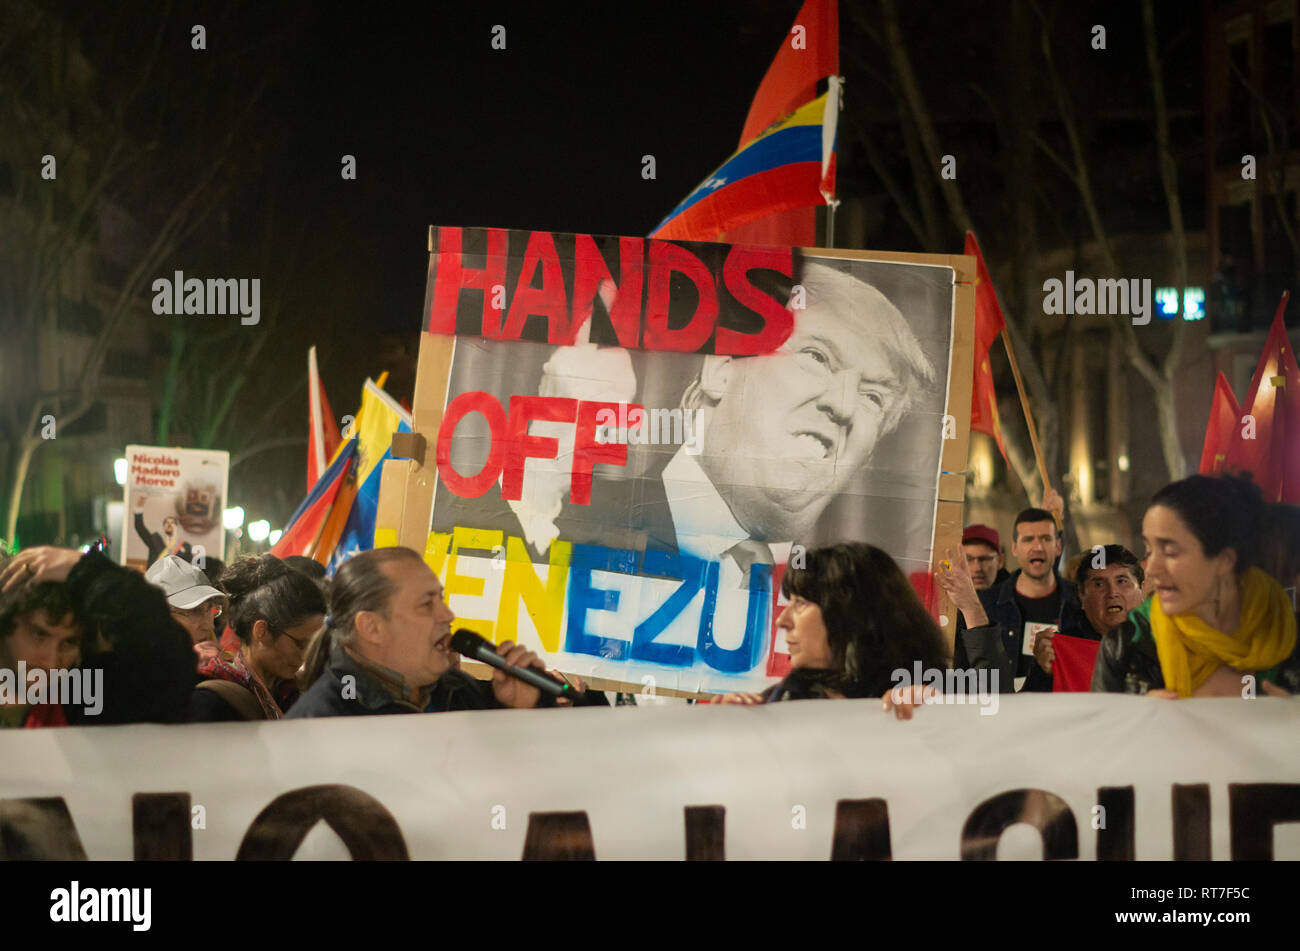 Madrid, Spain. 28th Feb, 2019. Hundreds of people protested against the intervention of United States in Venezuela marching from Atocha to Puerta del Sol in Madrid. Credit: Lora Grigorova/Alamy Live News Stock Photo